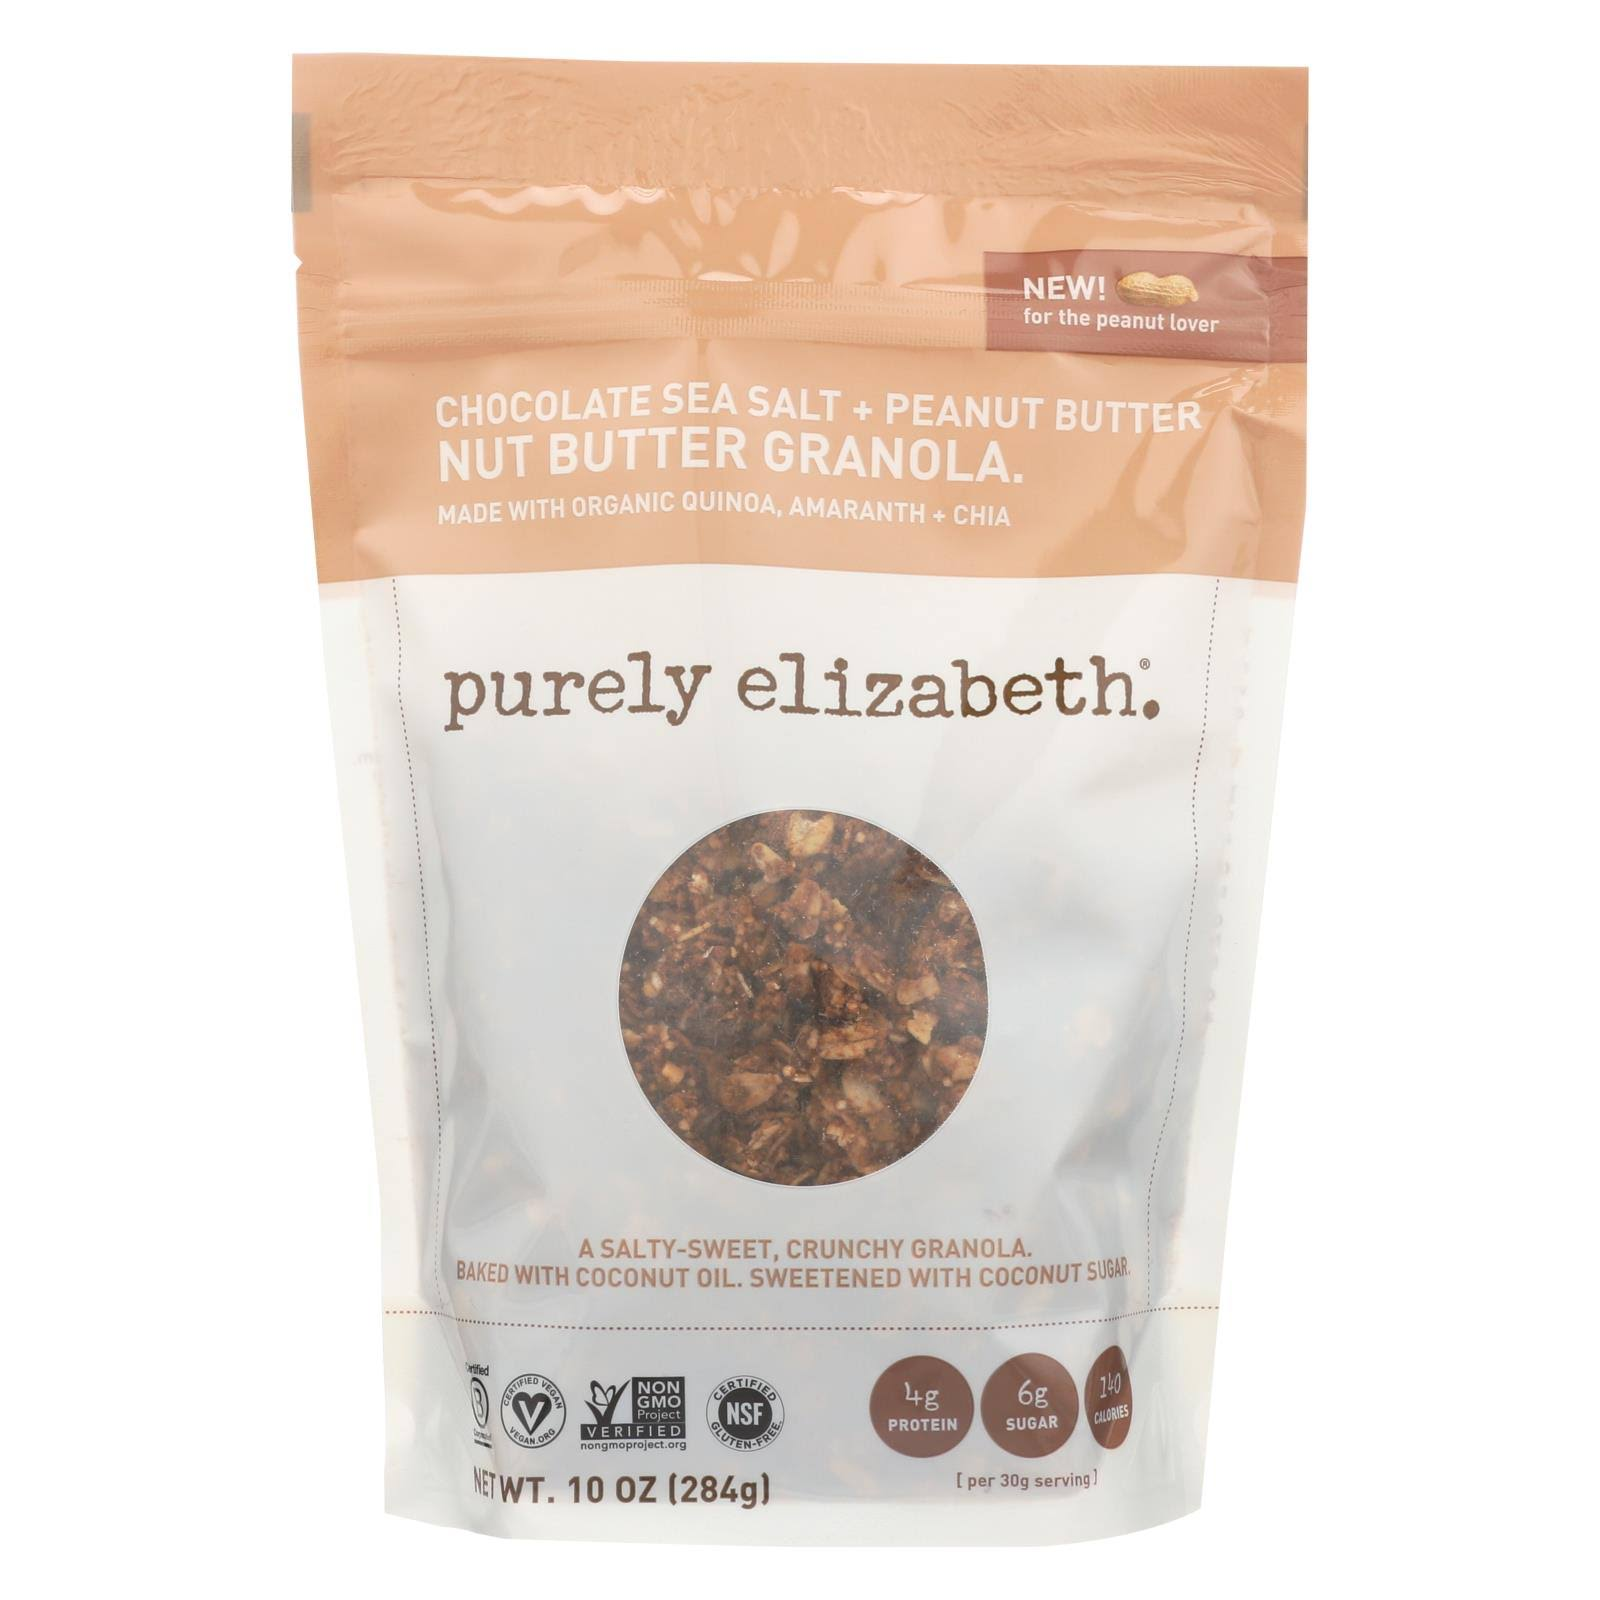 Purely Elizabeth Granola, Nut Butter, Chocolate Sea Salt + Peanut Butter - 10 oz